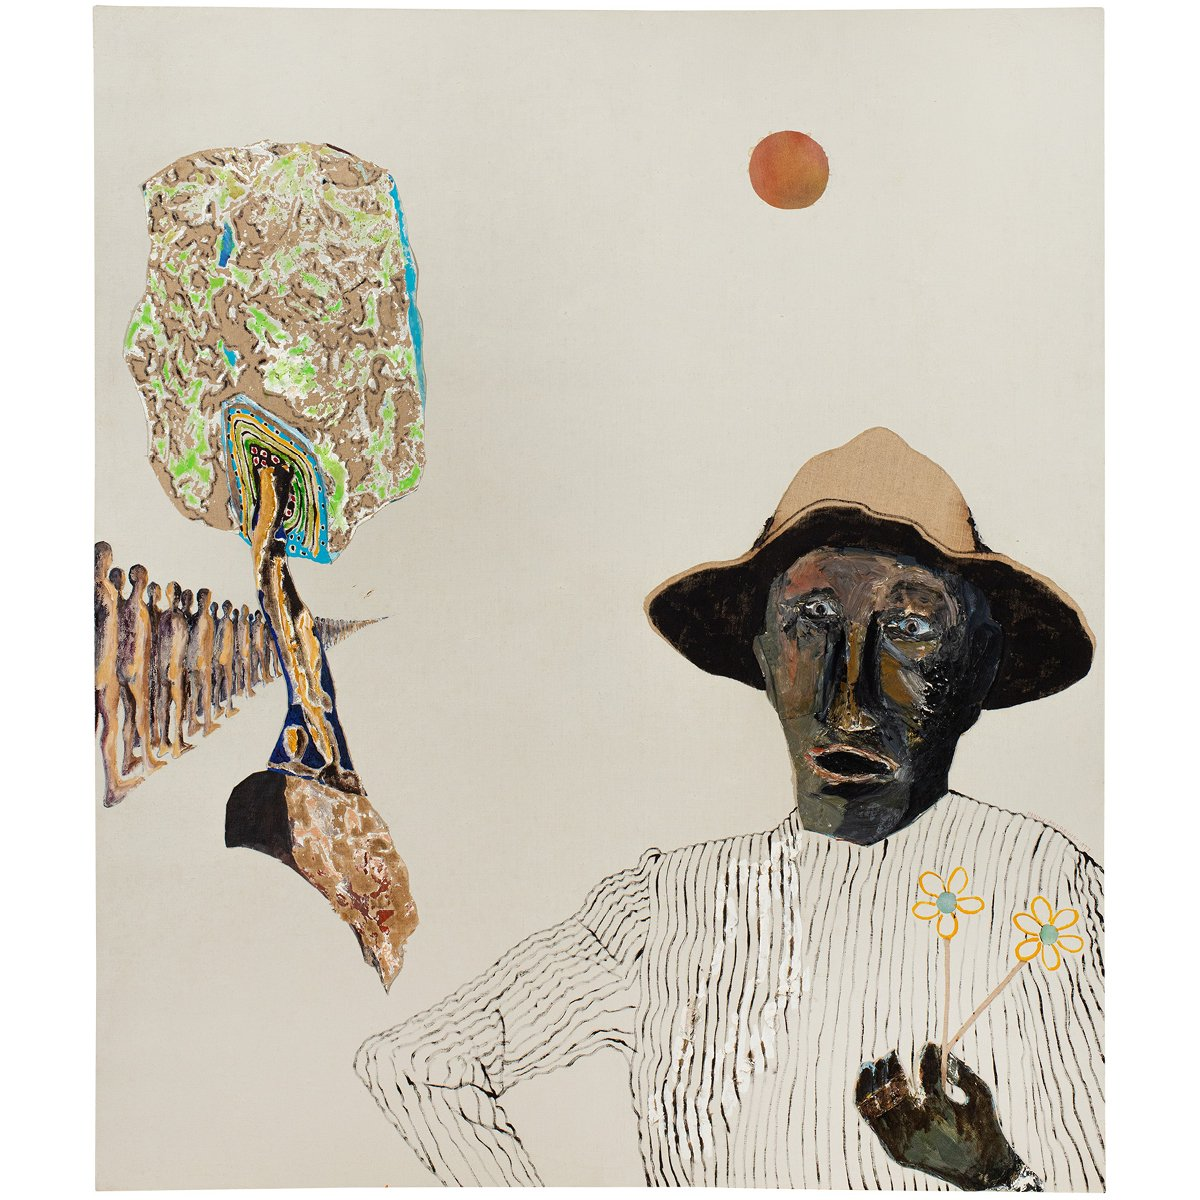 Benny Andrews (1930–2006), Louie, 1977, oil on canvas with painted fabric and mixed media collage, 59 1/2 x 51 x 1 3/4 inches / 151.1 x 129.5 x 4.4 cm, signed.